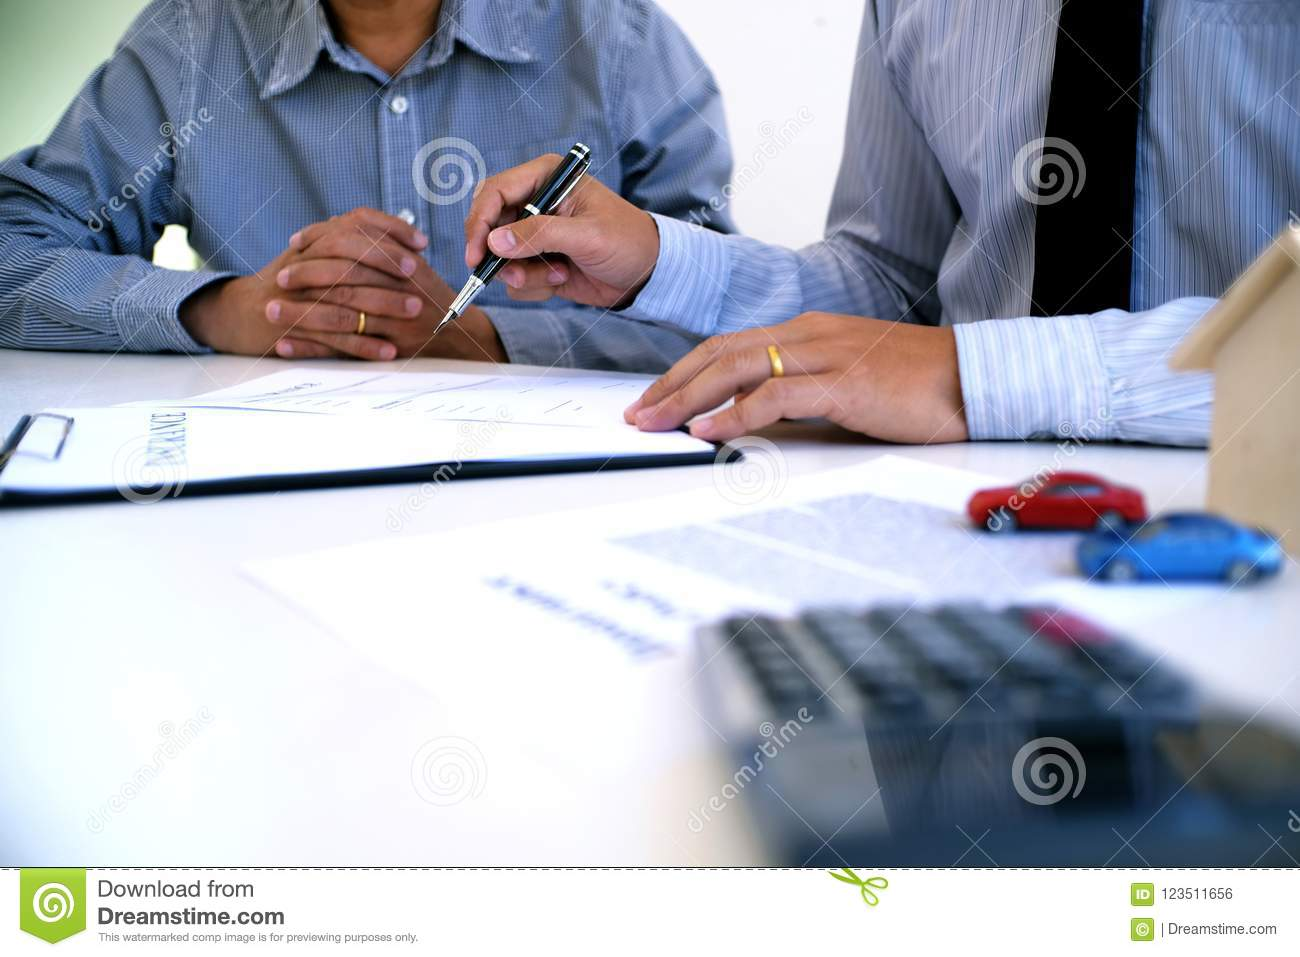 Sales manager giving advice application form document, considering mortgage loan offer for car and house insurance.